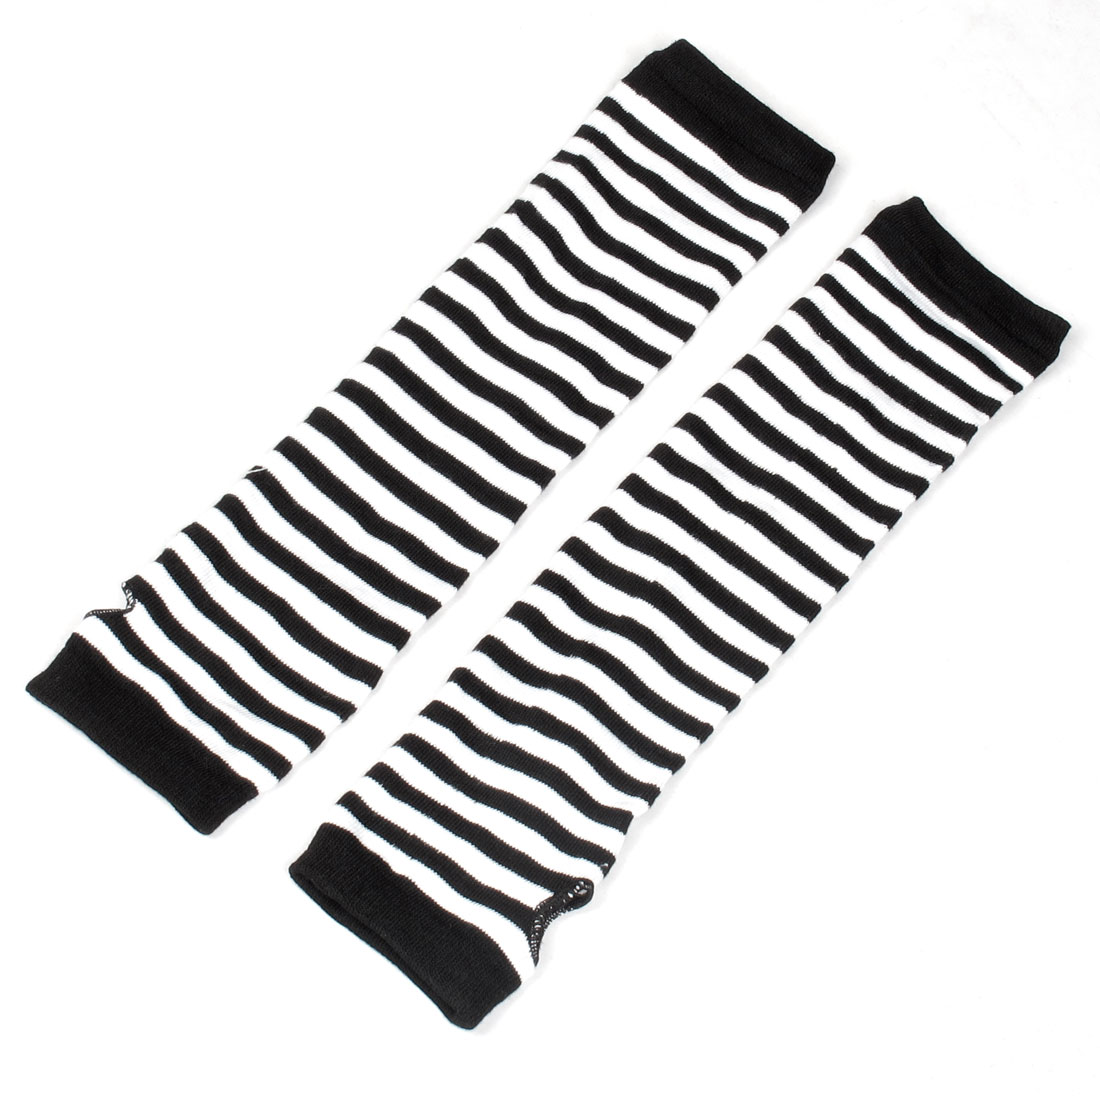 Black White Stripes Pattern Stretchy Knitted Warmers Gloves for Ladies